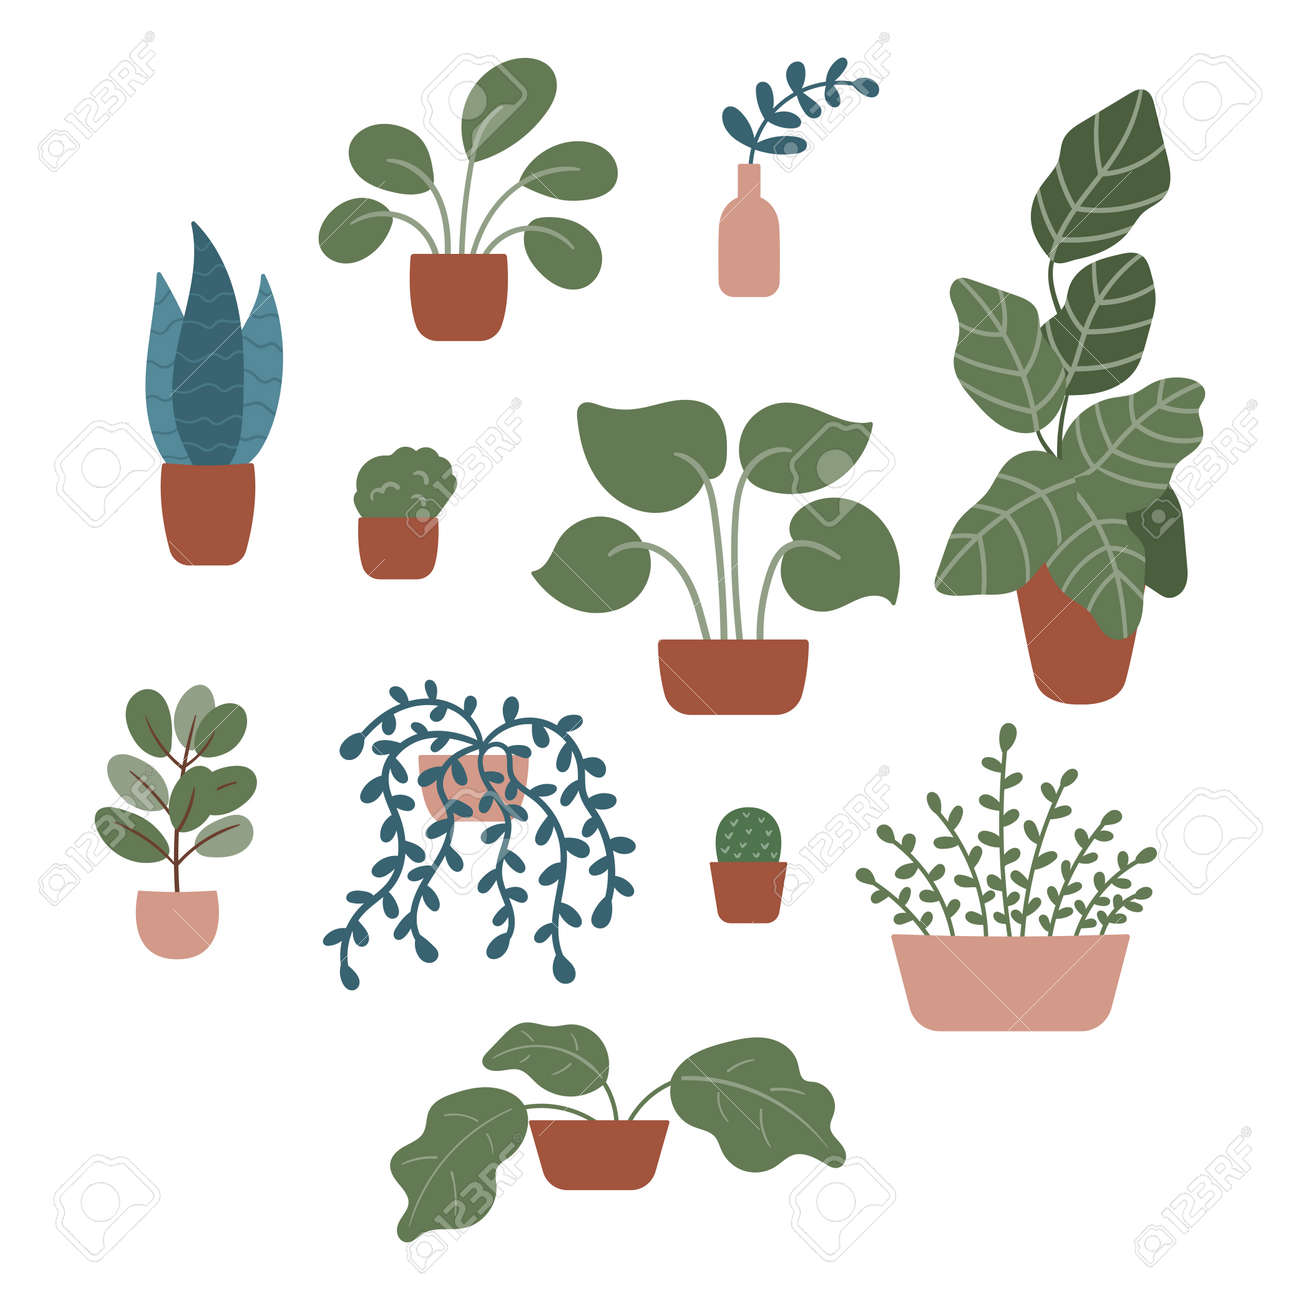 Hand drawn doodle plants in pots and vases on isolated background. Tropical and exotic flowers, vines, cactus and branches. Vector elements for cozy interior. - 165650153